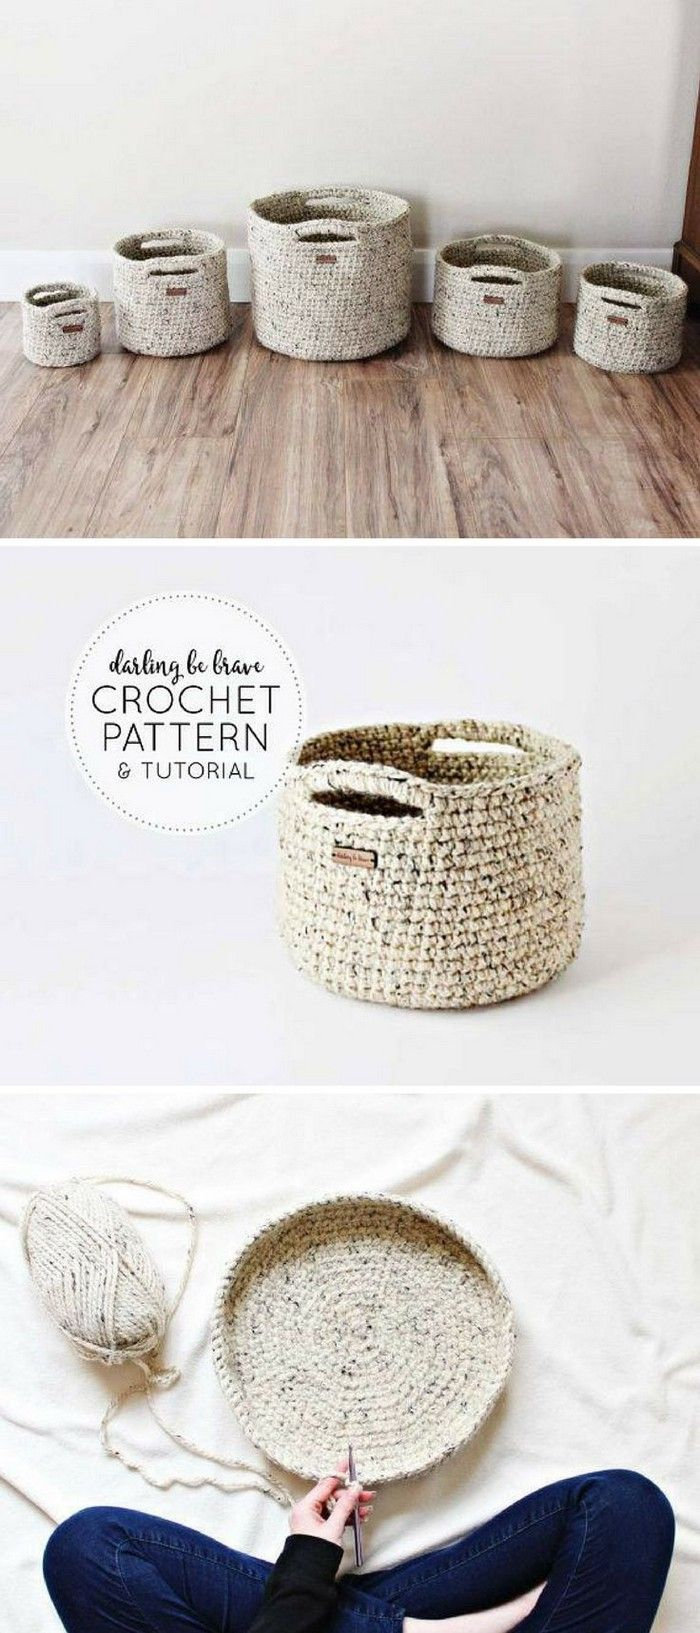 Crochet Home Décor Patterns - Bright Up Your Home #crochetdiy